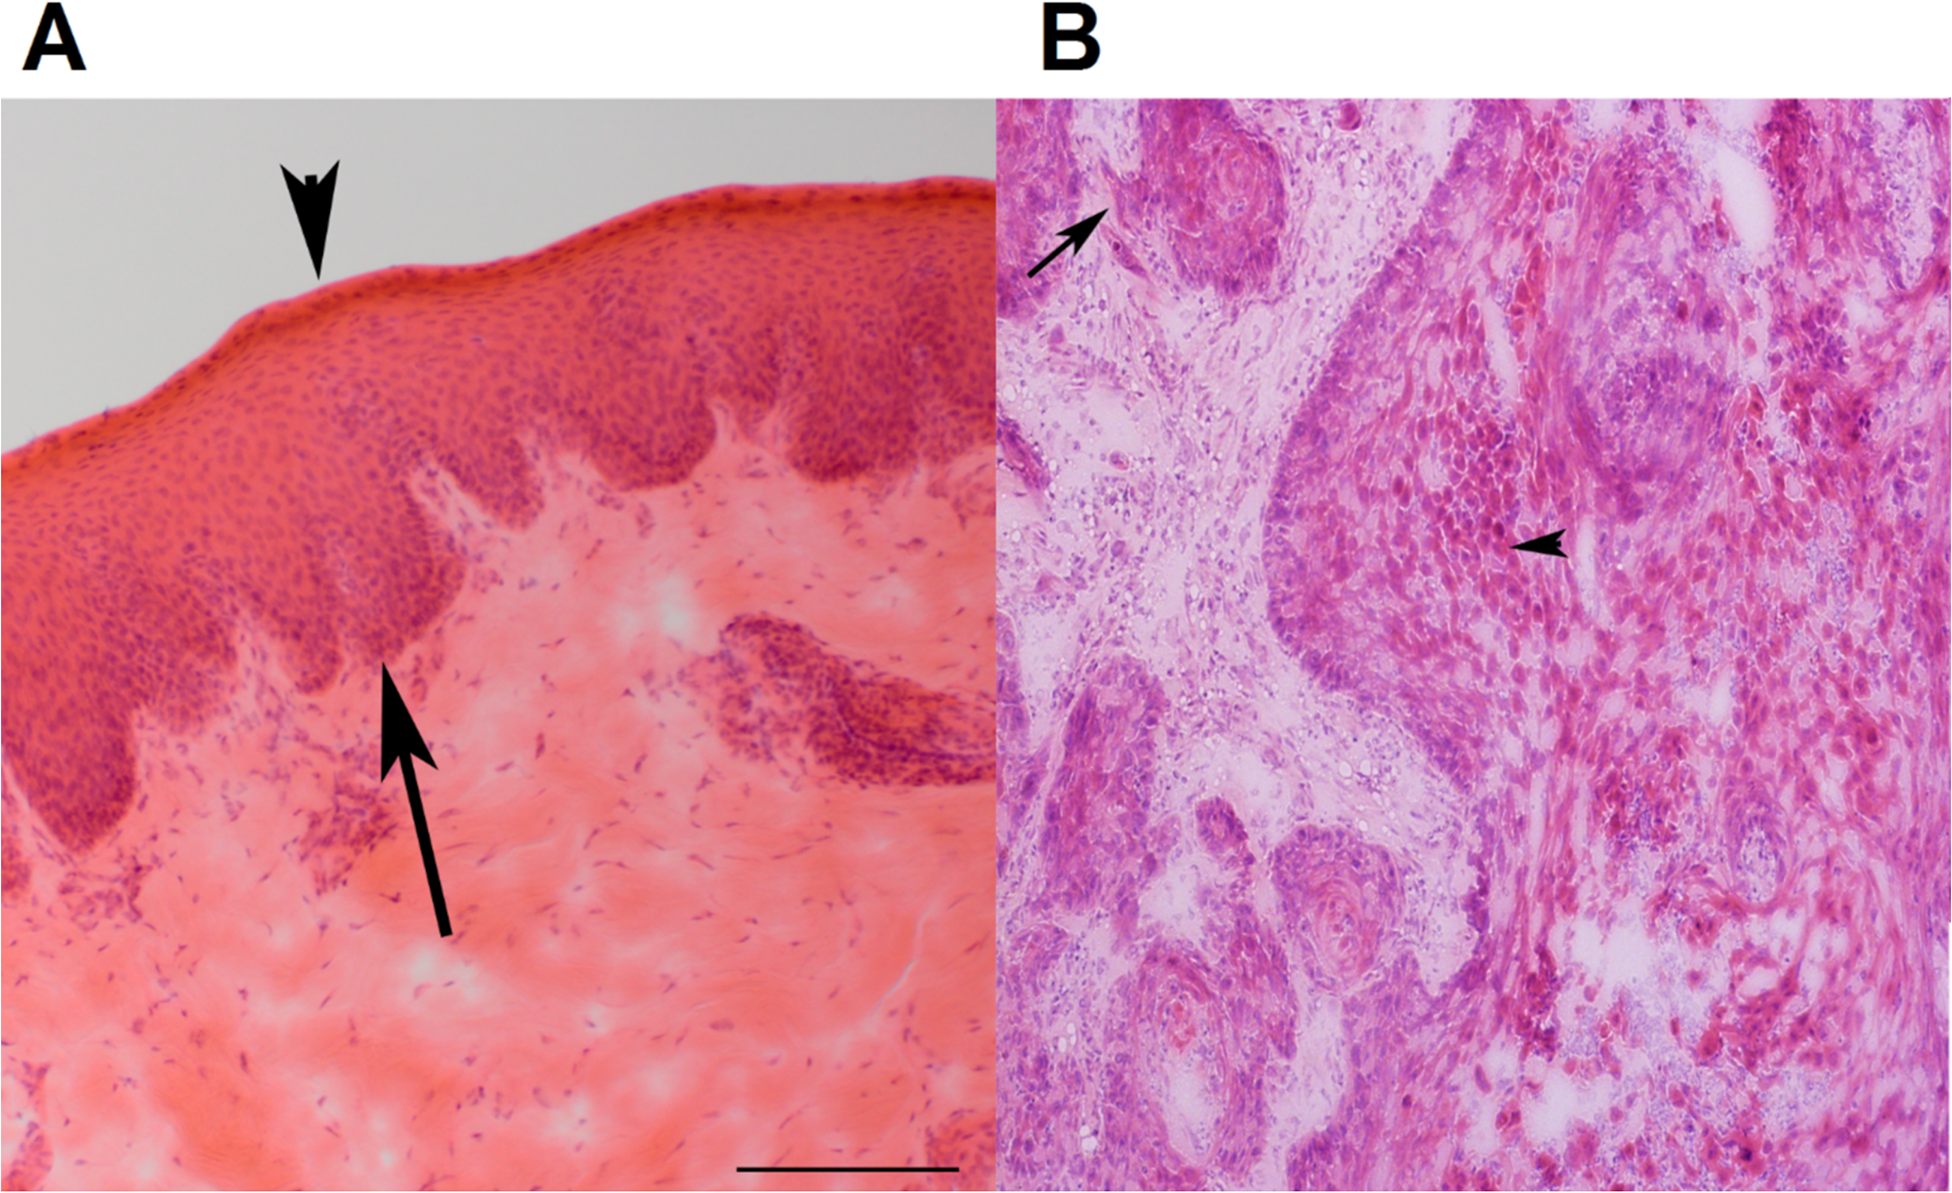 Representative H&E stained images of canine normal squamous epithelium and SCC of the oral cavity.